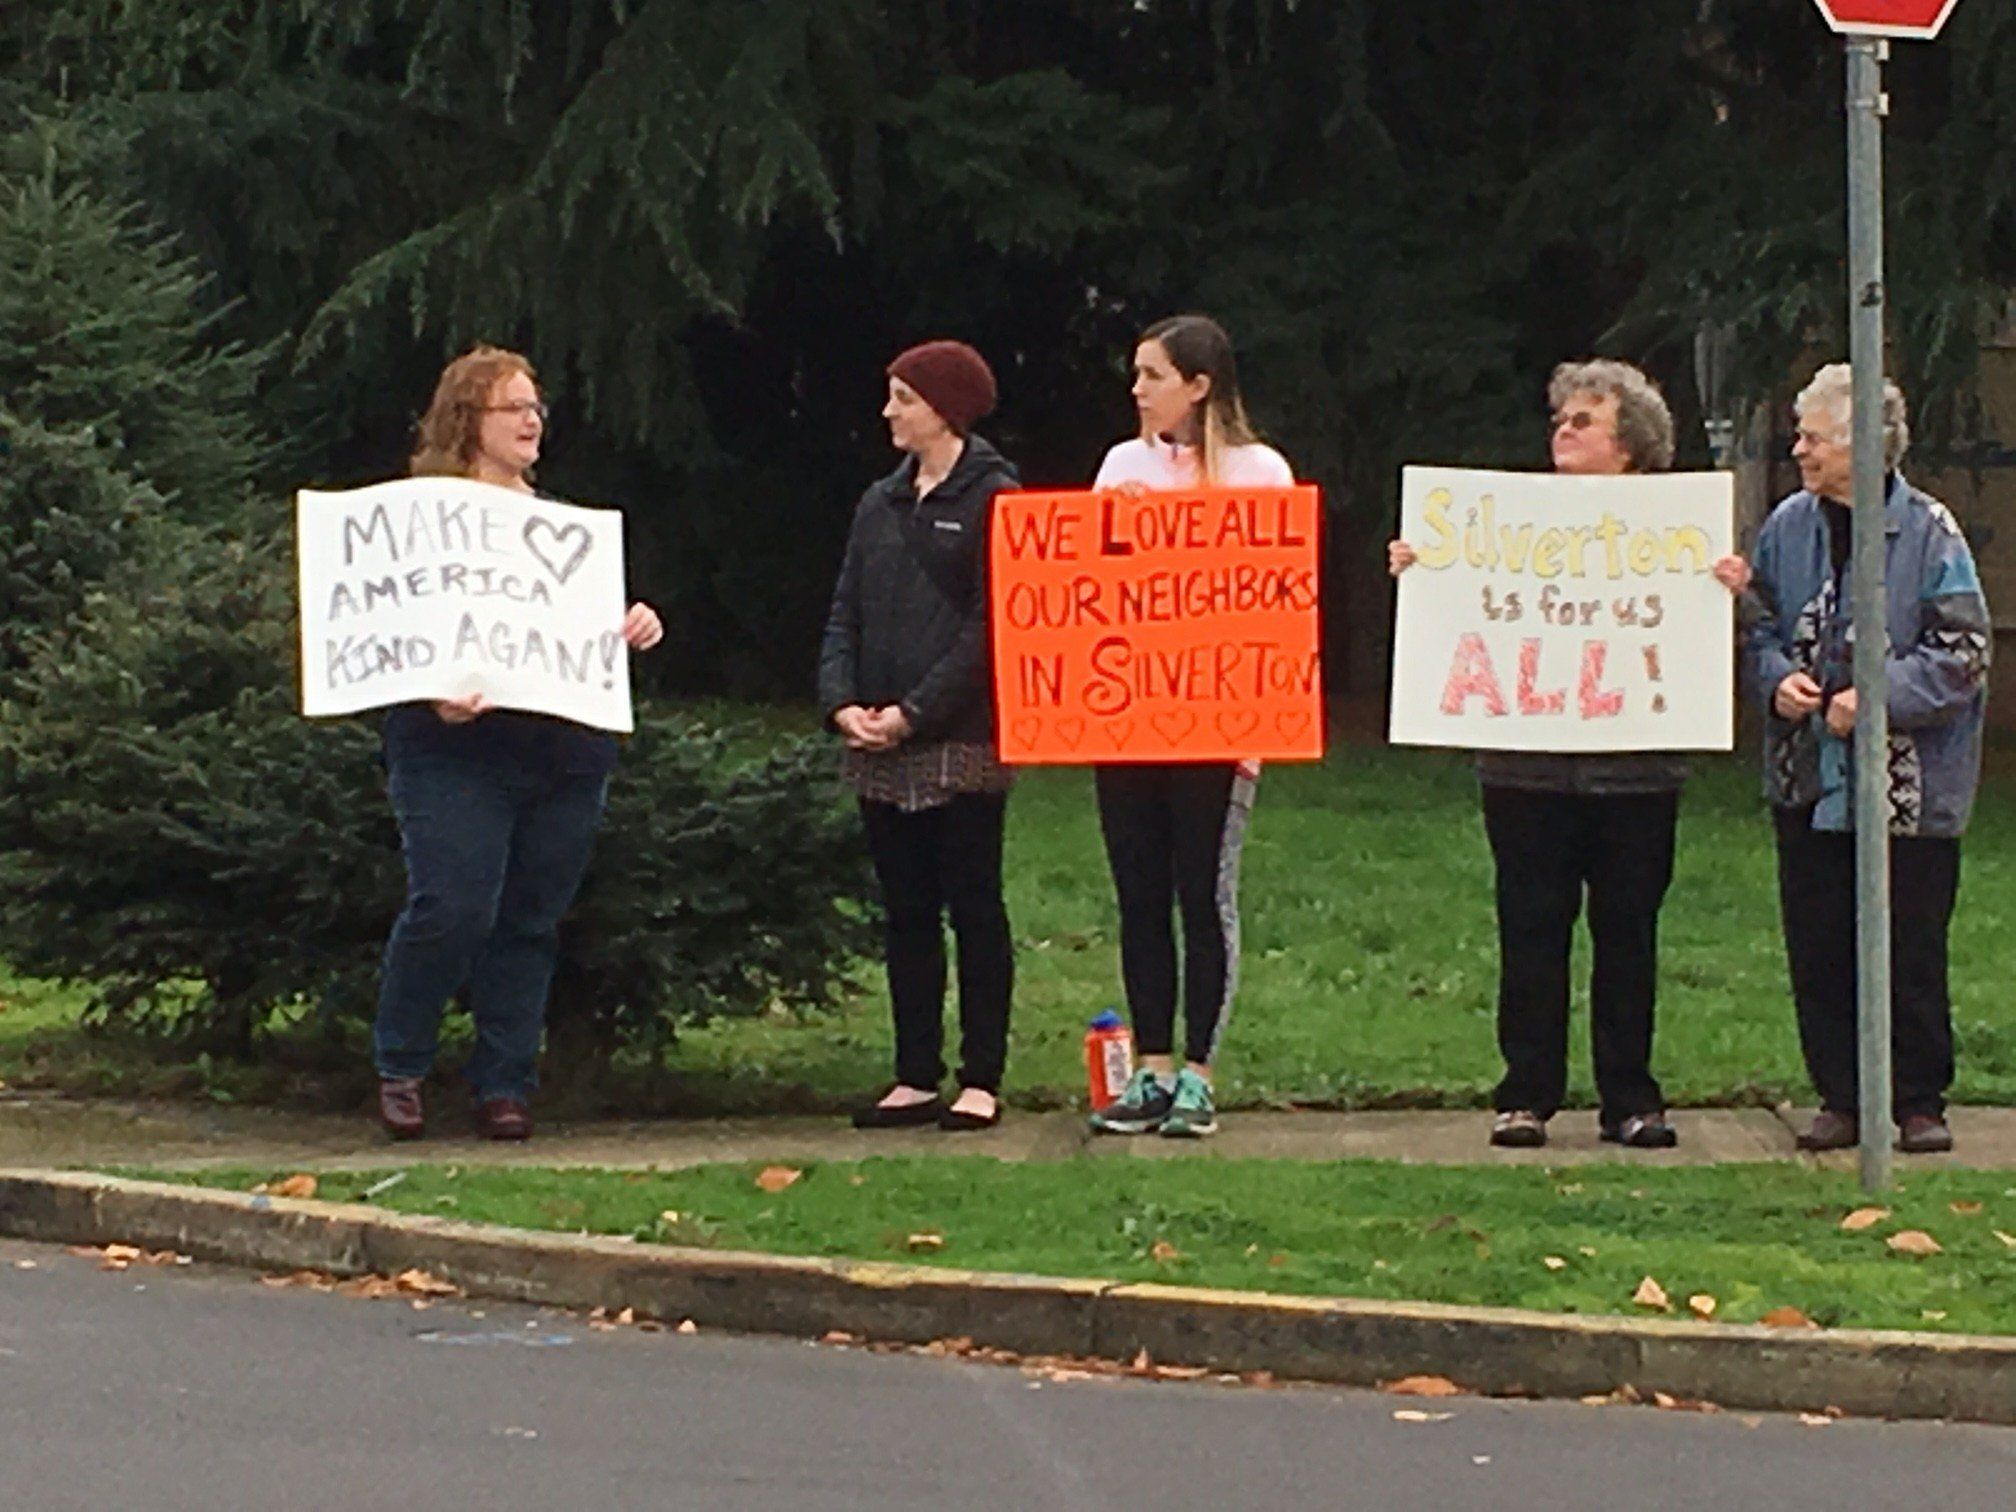 Community members gather in Silverton to support students targeted by racial slurs. (KPTV)